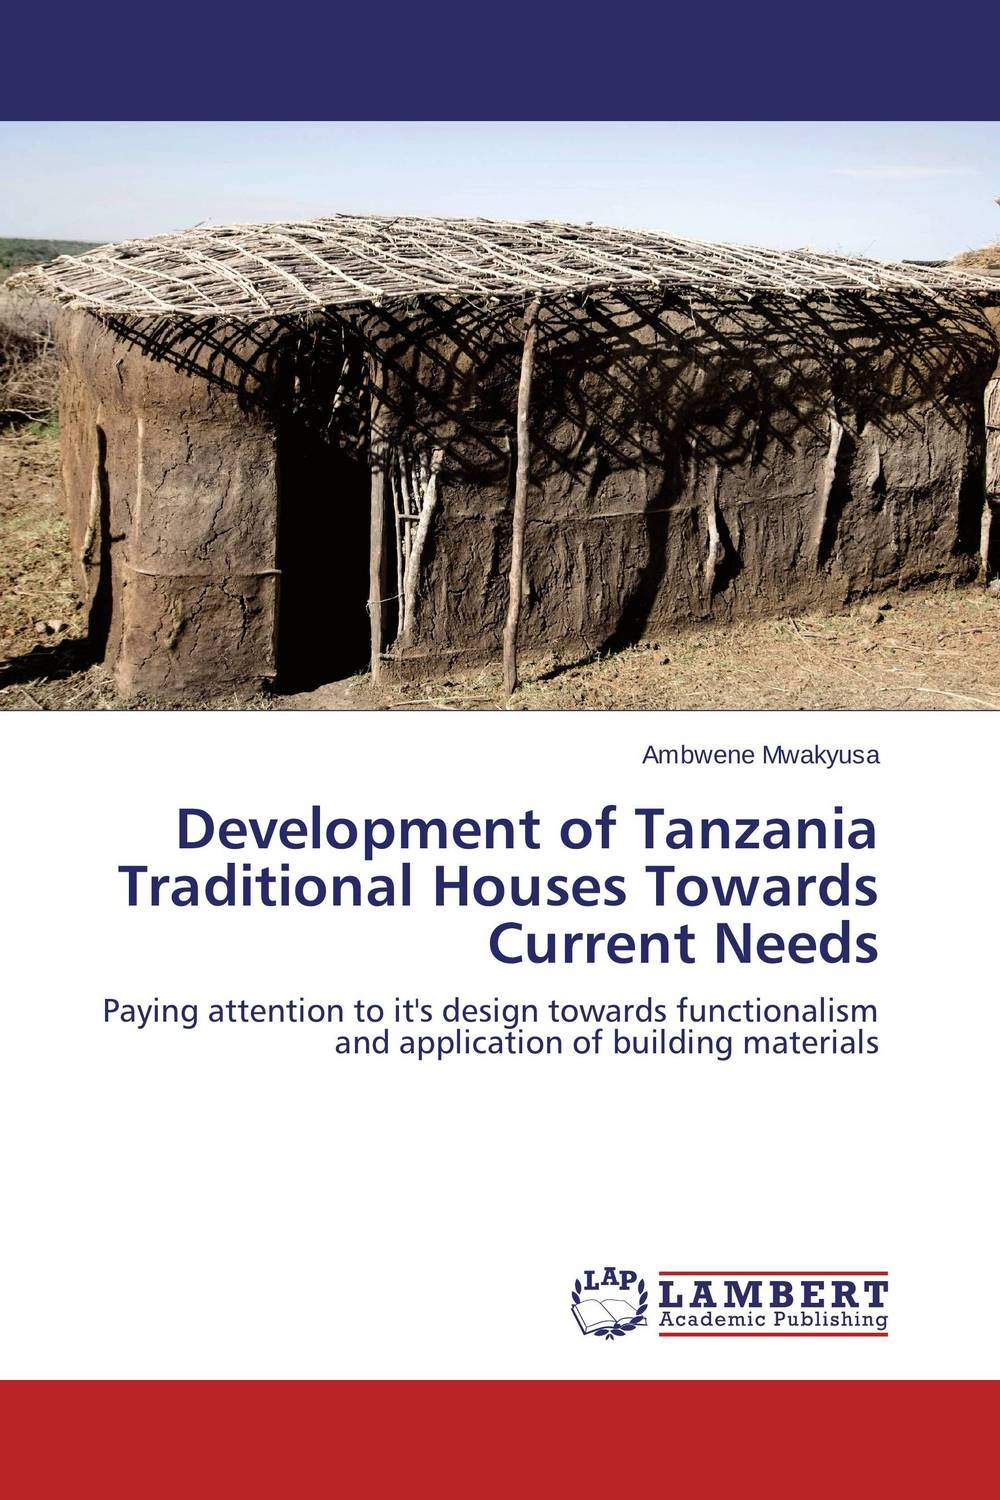 Development of Tanzania Traditional Houses Towards Current Needs corporate real estate management in tanzania